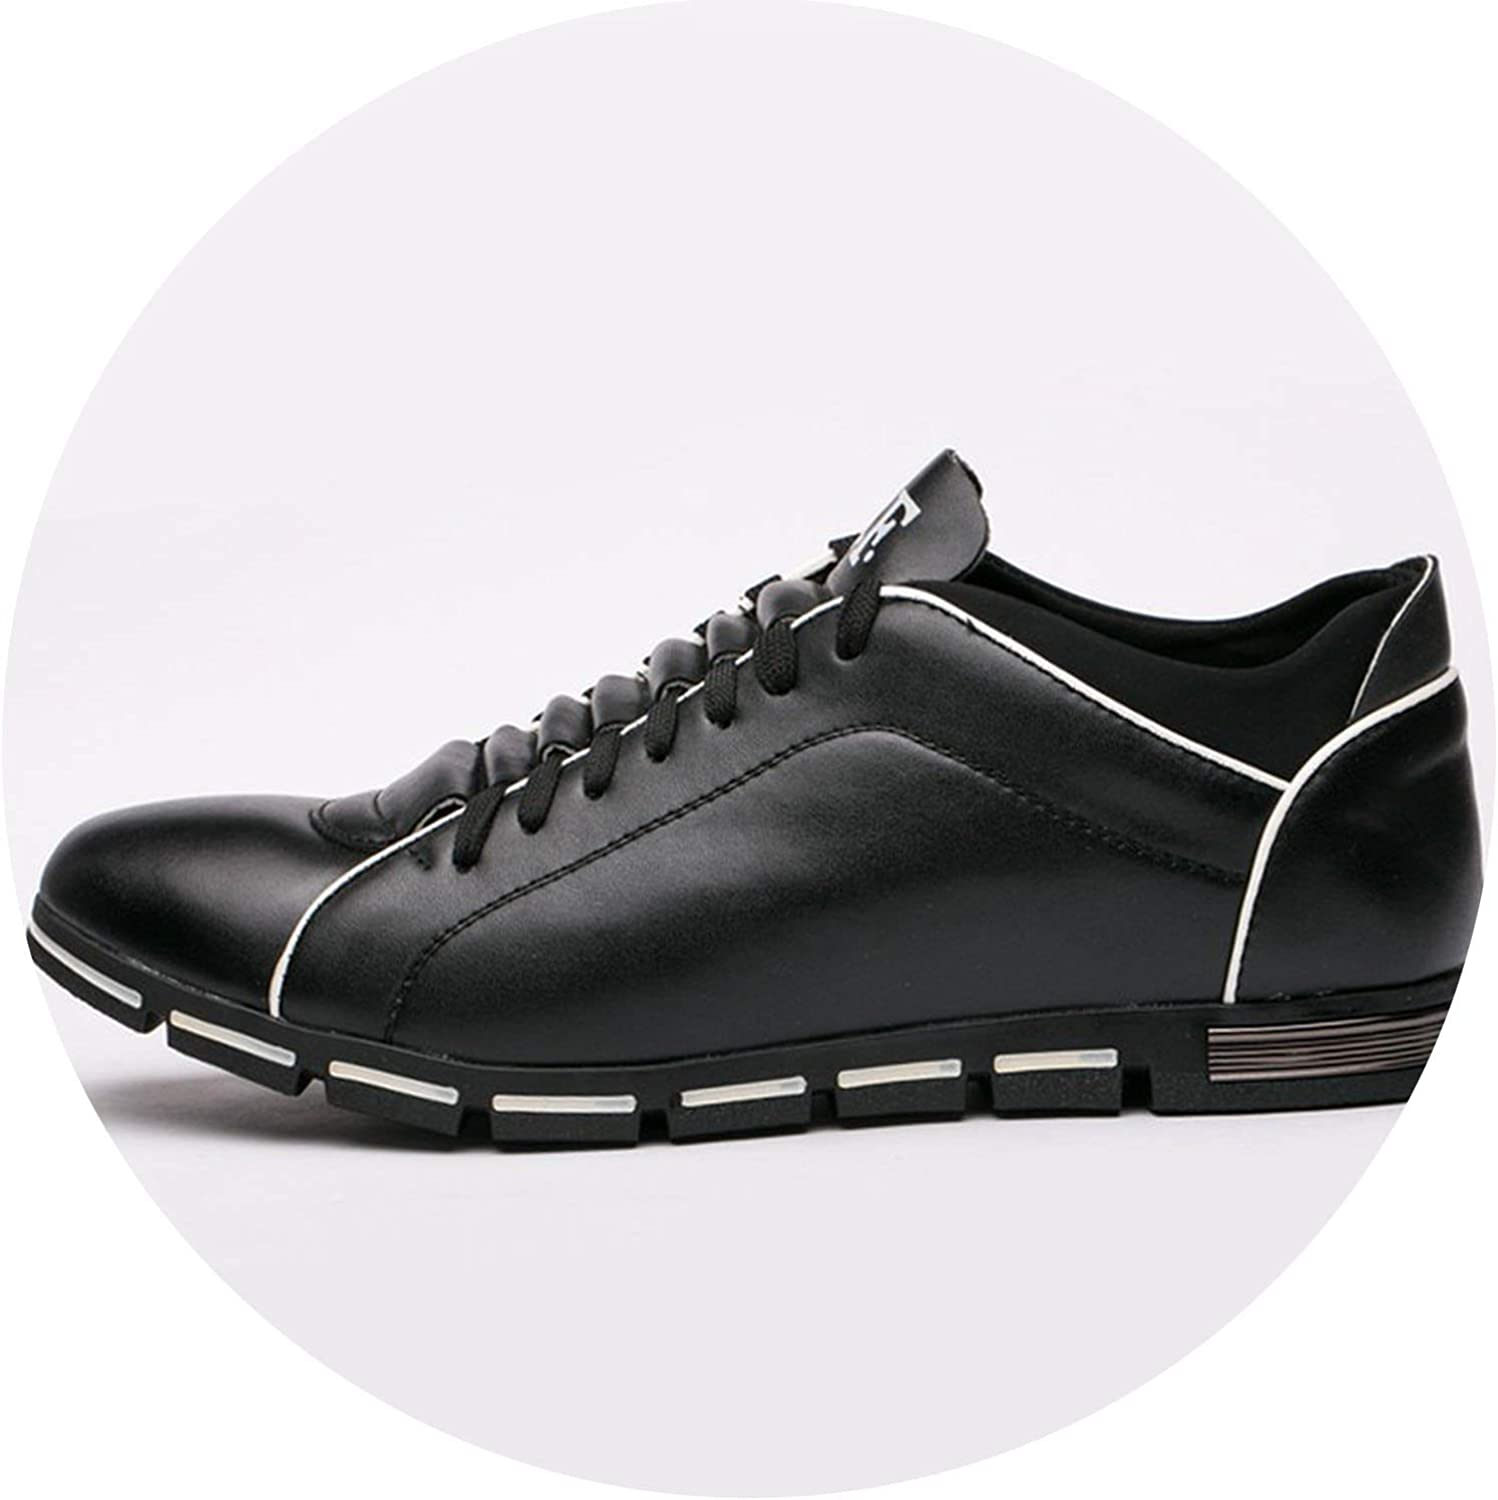 Every kind of beauty Autumn Men Fashion British Sports Style Casual Cross-Border shoes Supersize Four Seasons Men's shoes Size 38-48